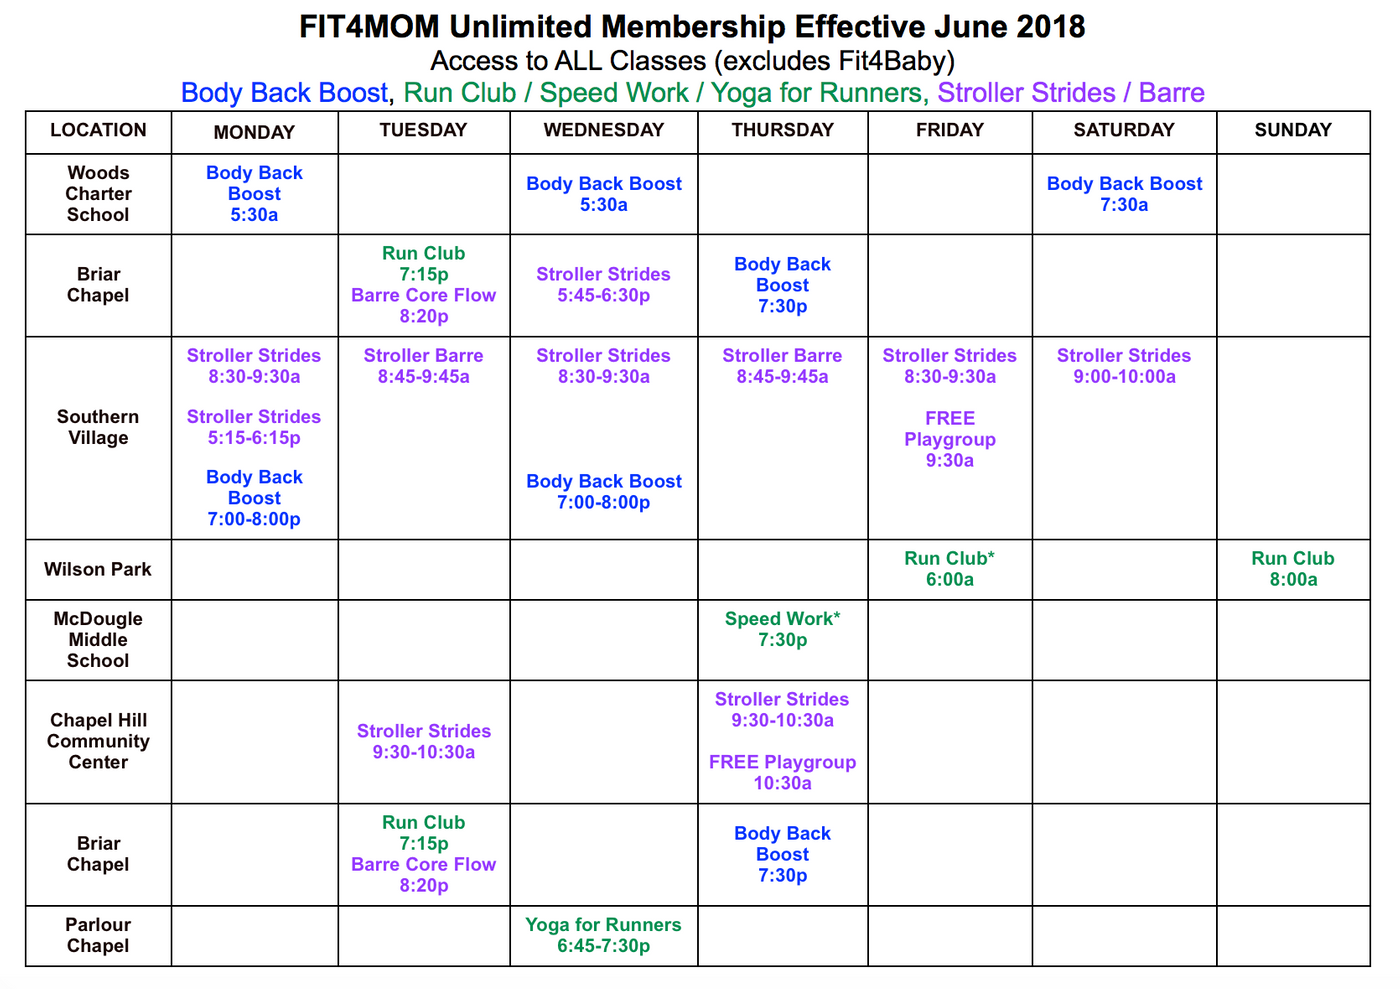 FIT4MOM Unlimited Membership Effective June 2018.png